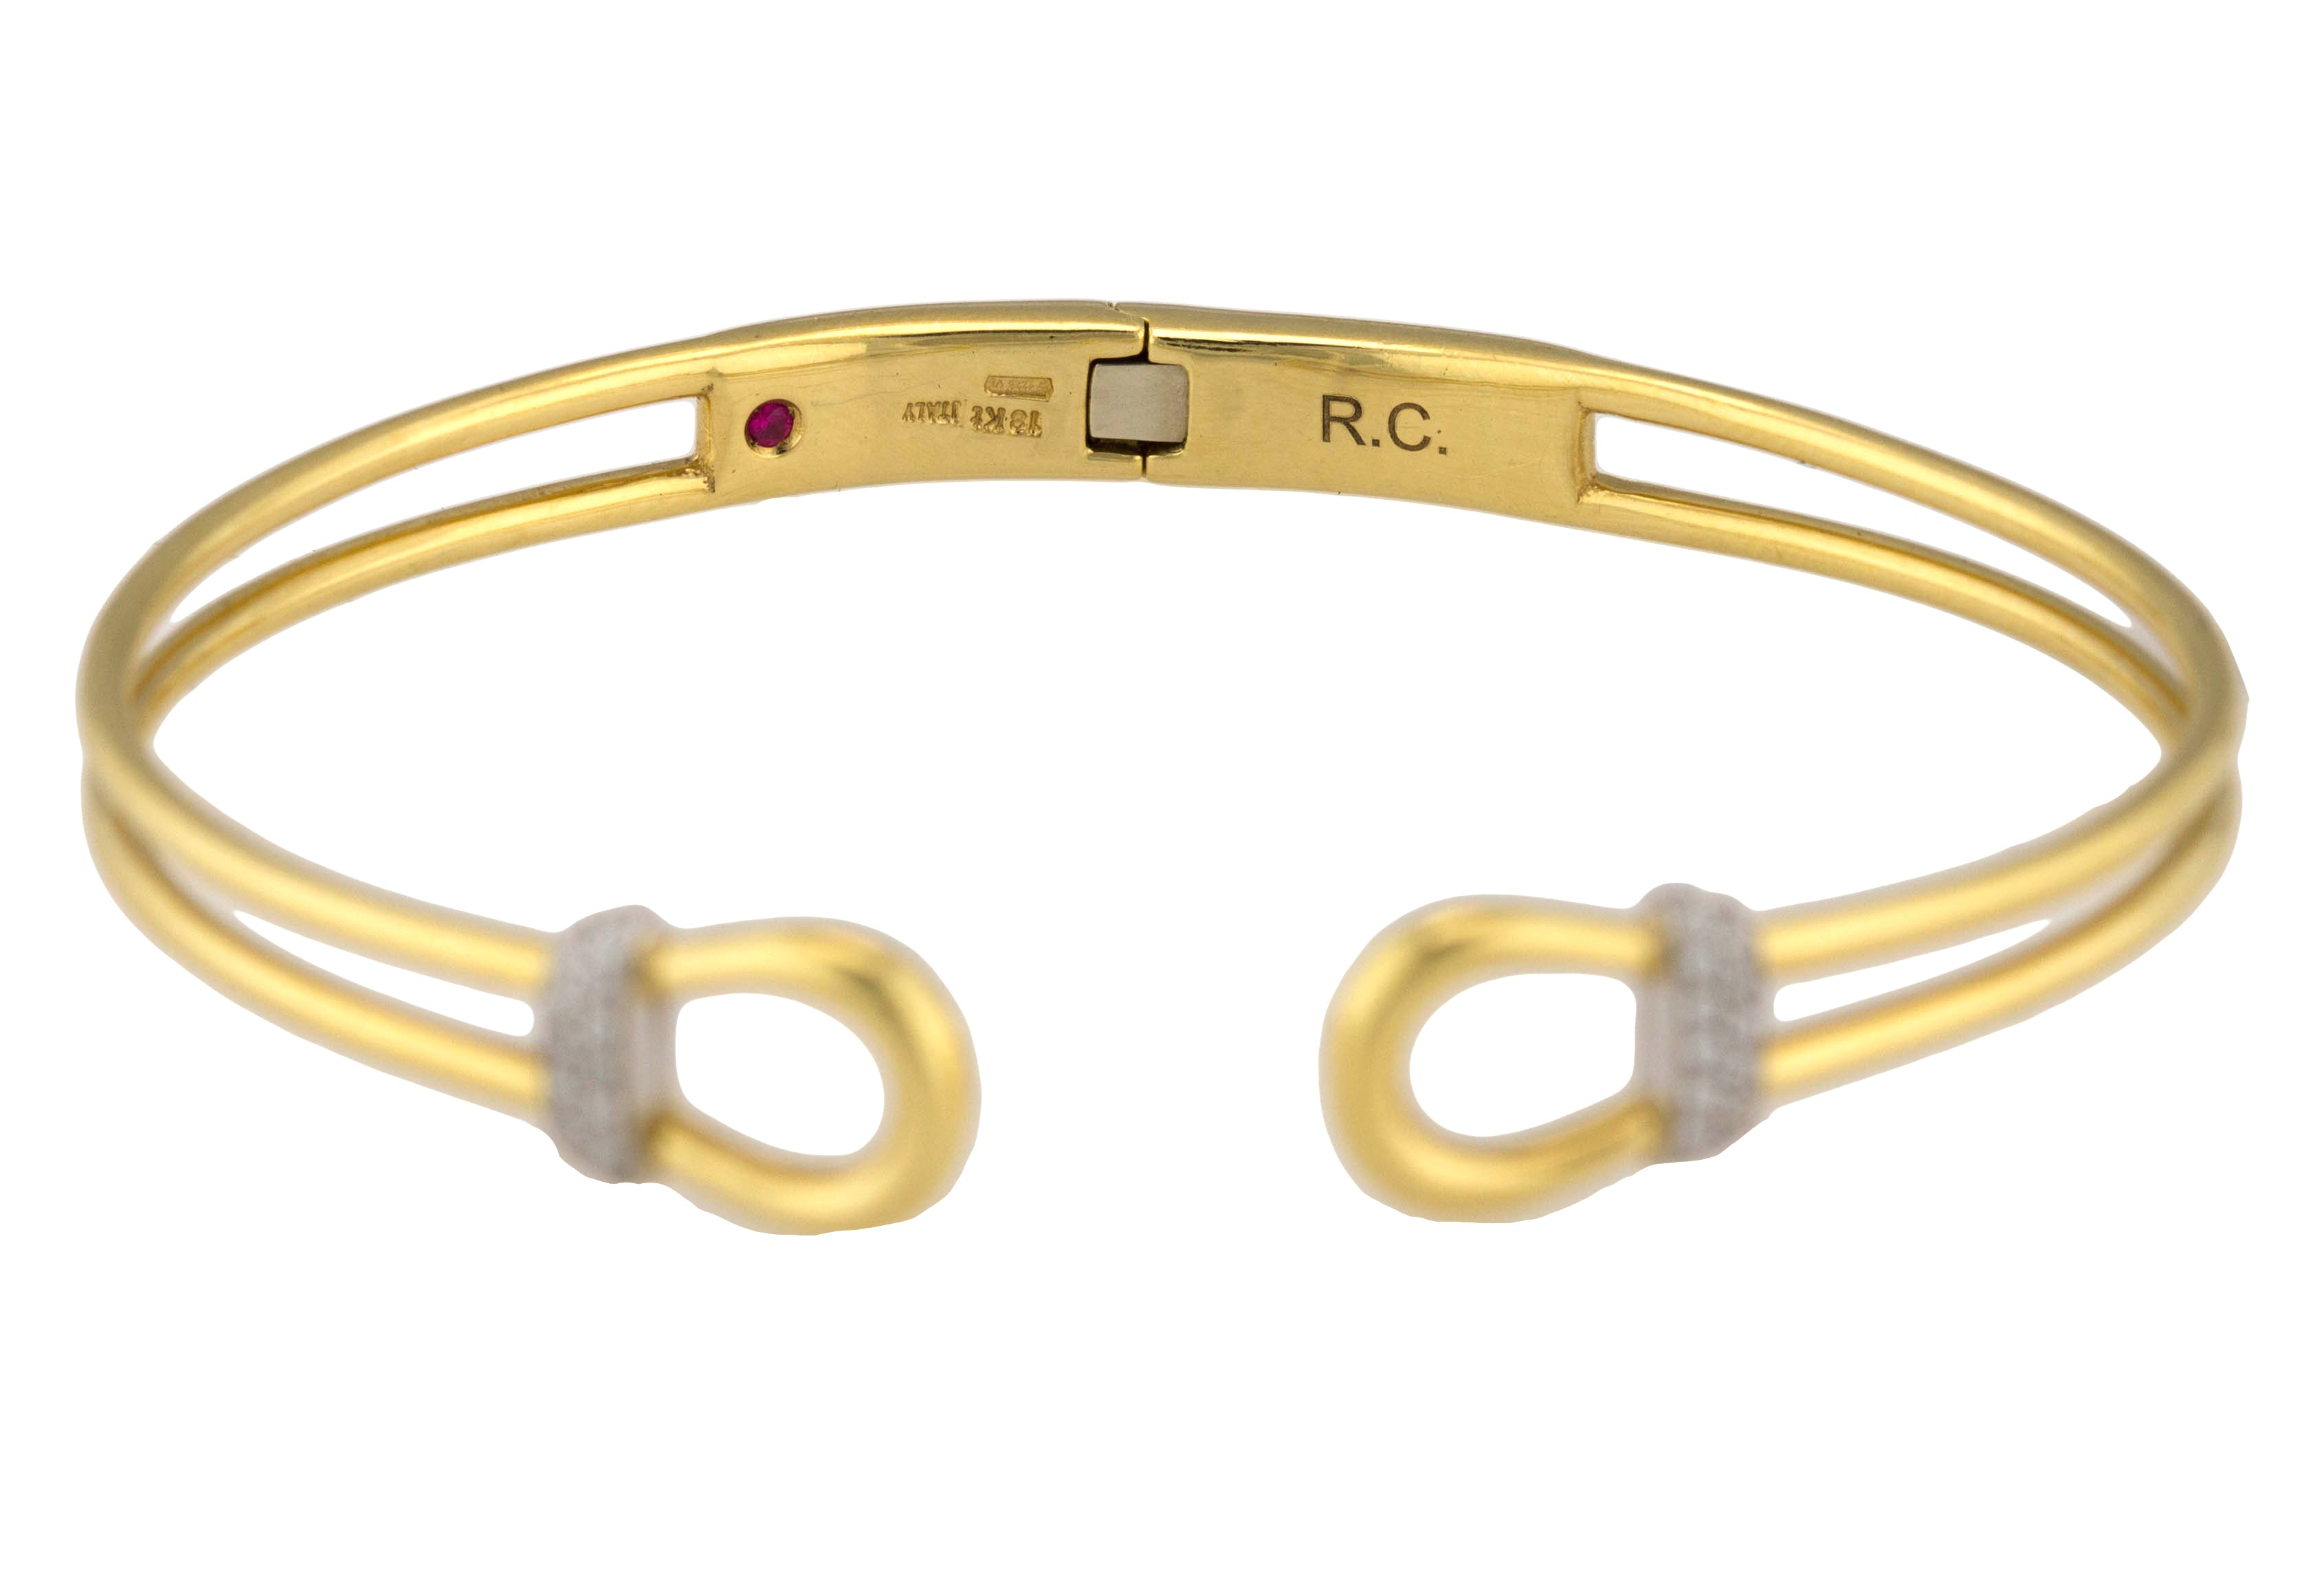 Roberto Coin 18K White Yellow Gold Classic Parisienne Diamond Open Cuff Bracelet